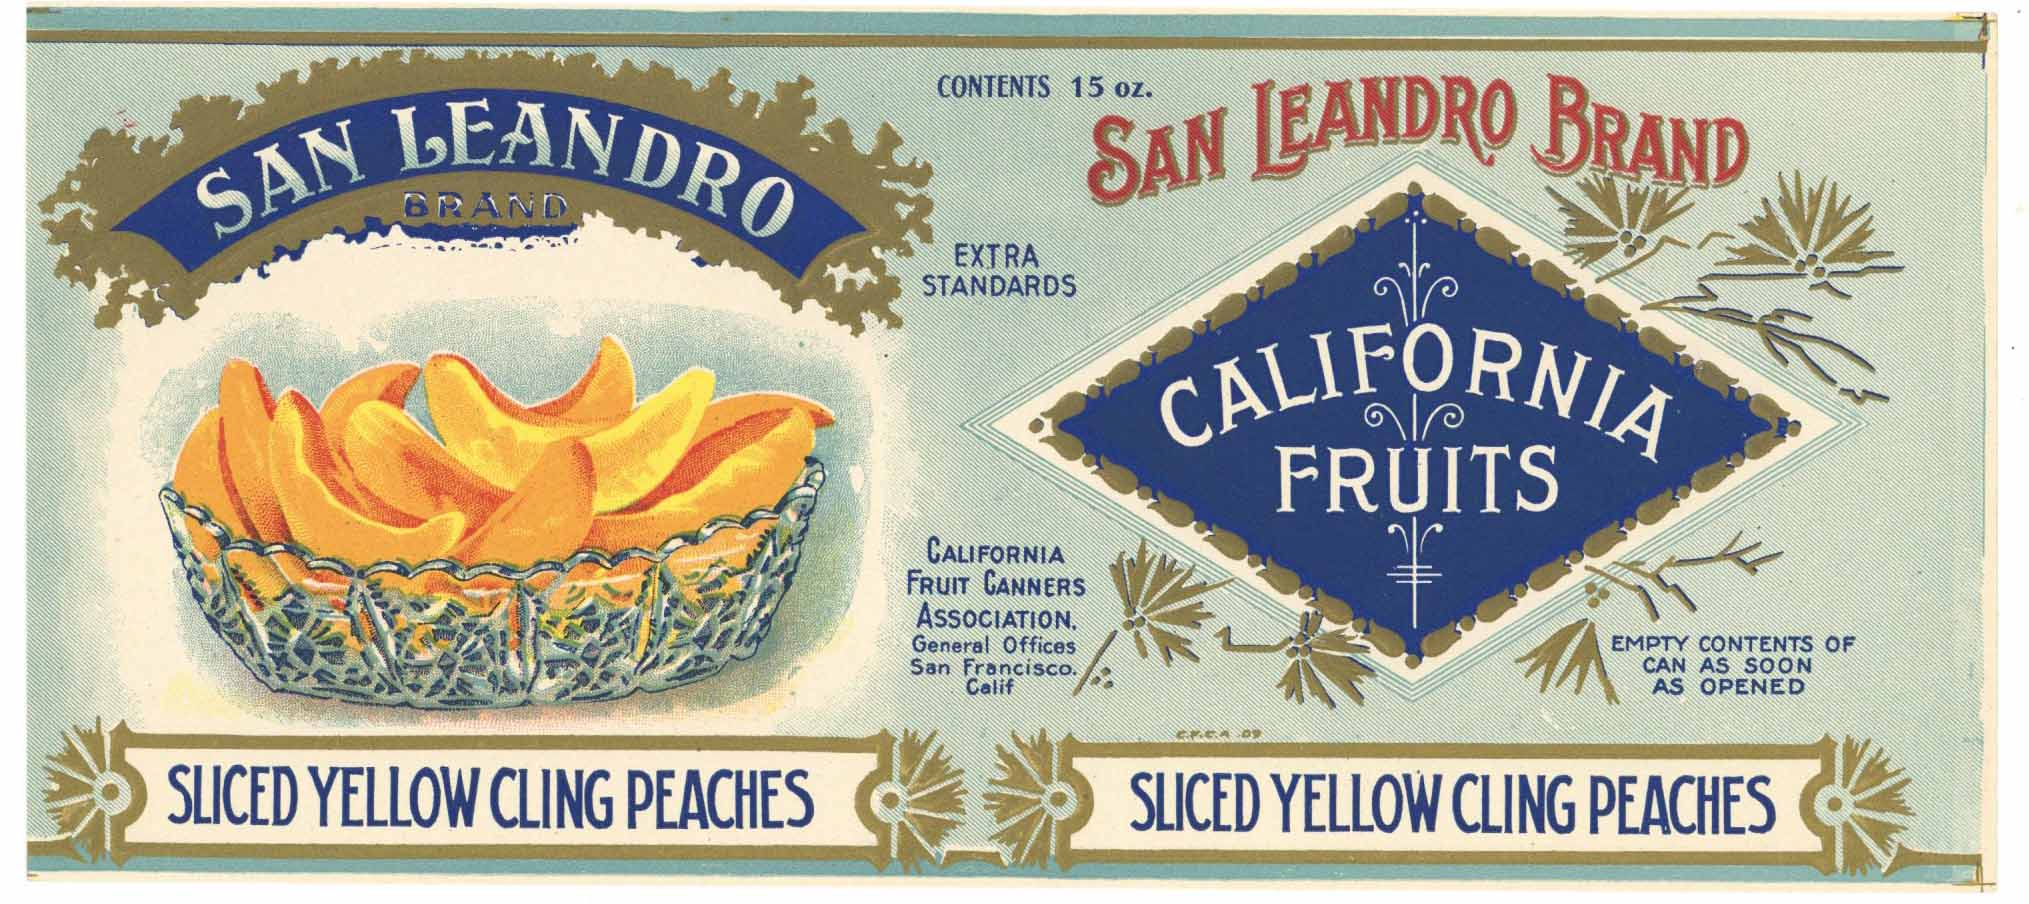 San Leandro Brand Vintage Alameda County Peach Can Label